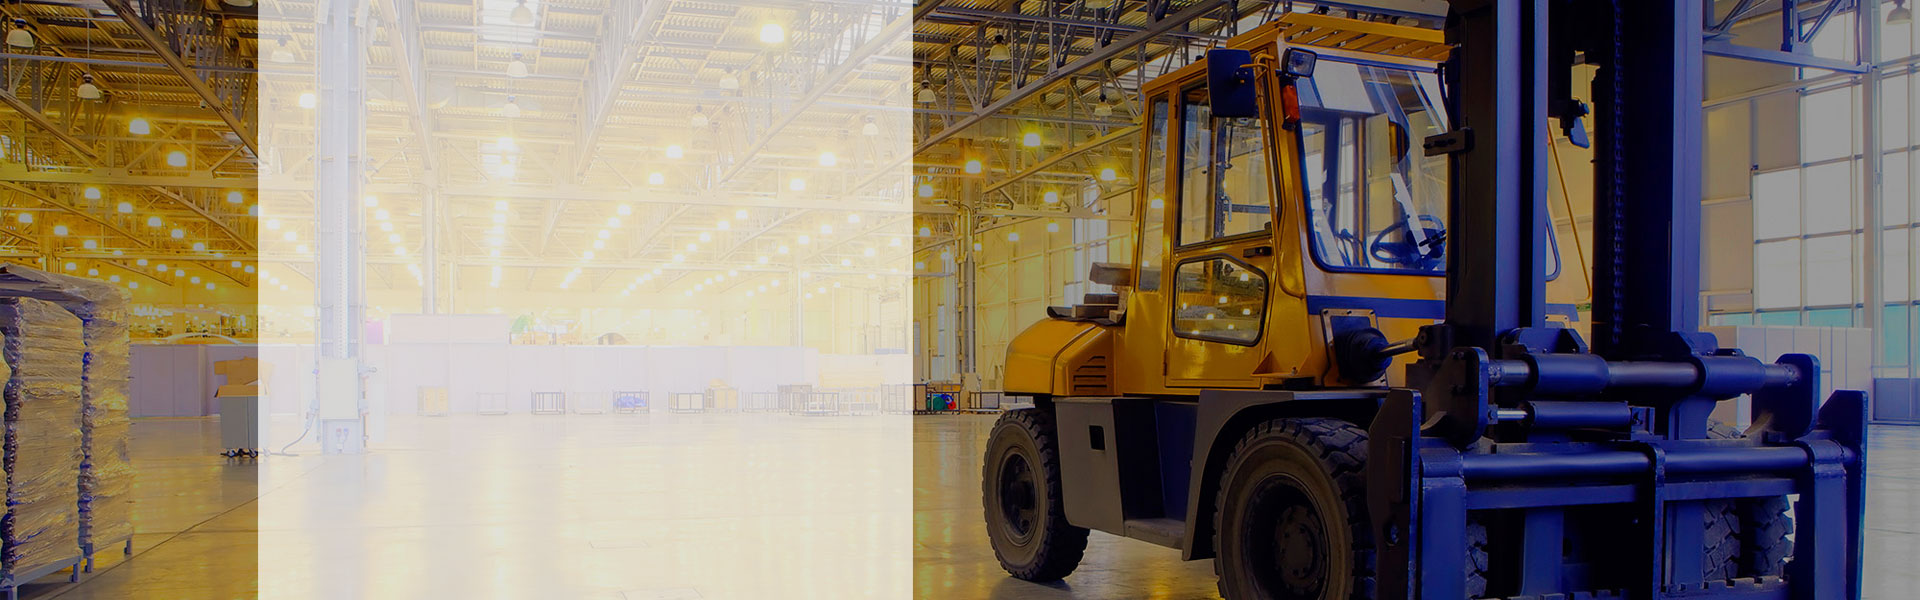 Warehouses services and specialized distribution tailored to specific customers' requirements